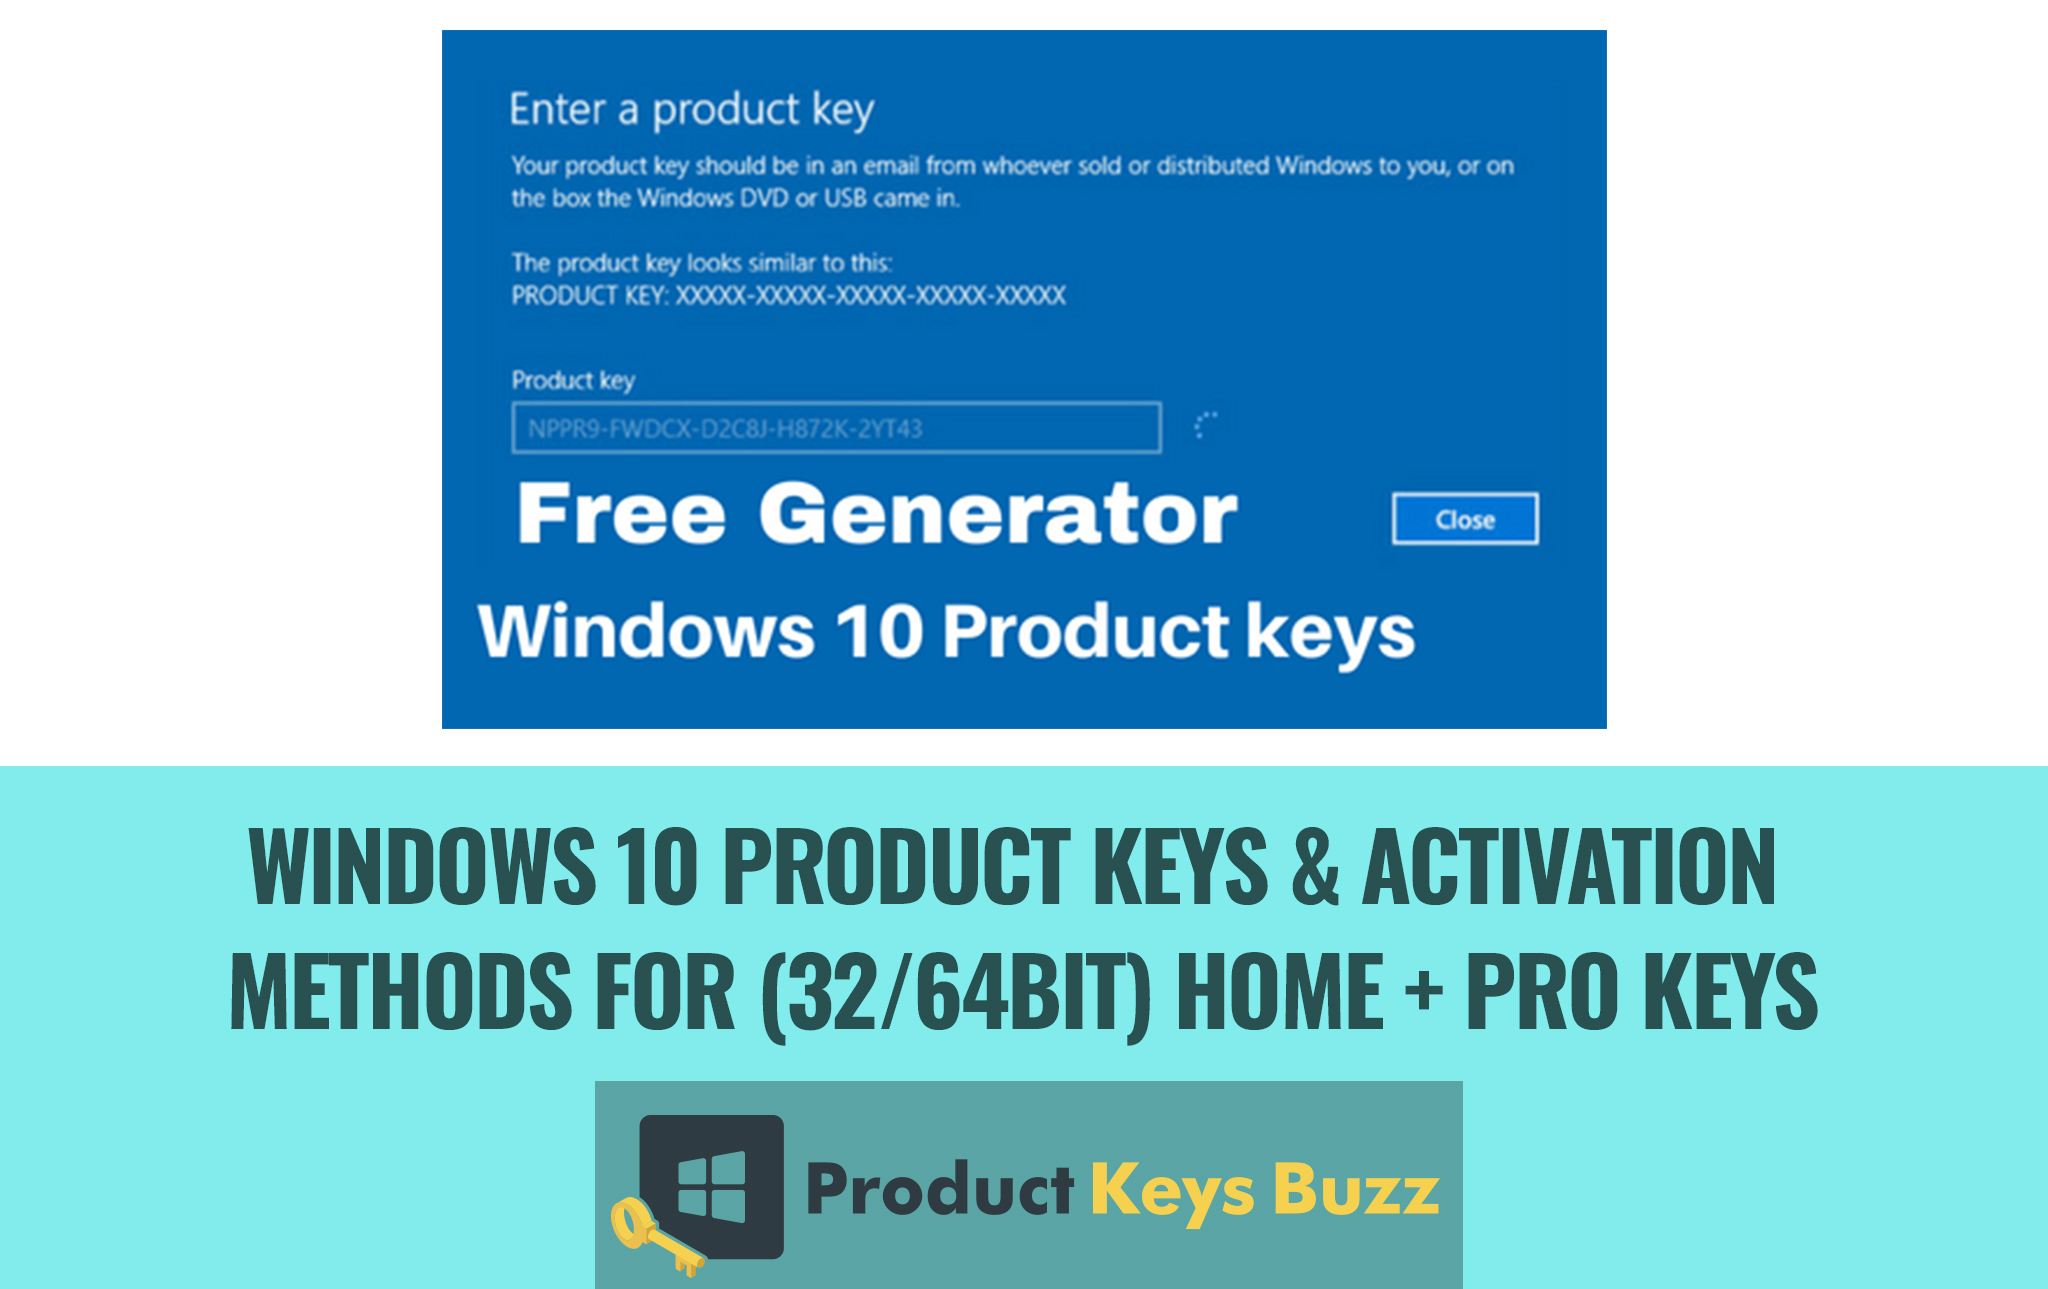 Working List] Windows 10 Product Keys & Activation Methods